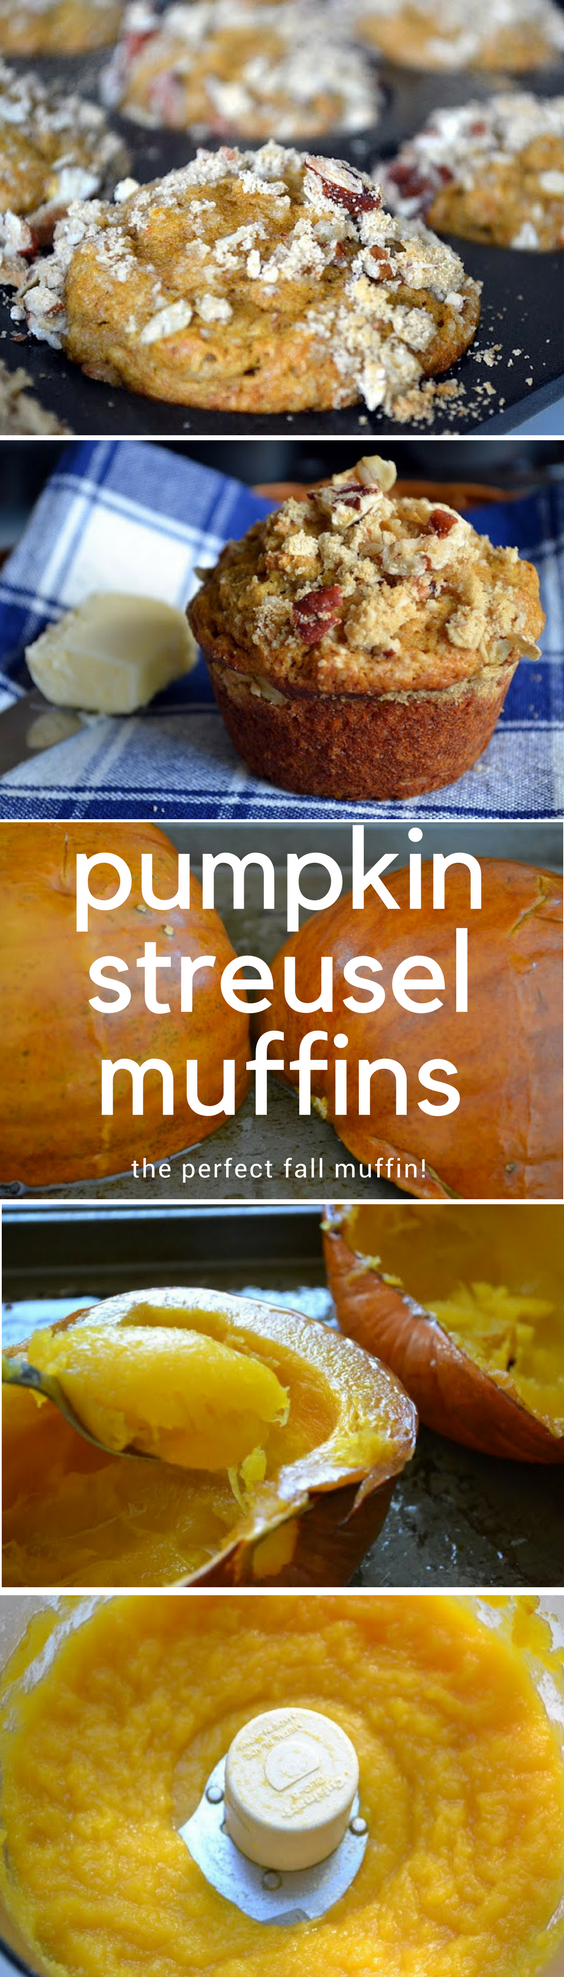 These Pumpkin Streusel Muffins are light, fluffy, and fragrantly spiced. The streusel topping adds that perfect bit of sweet crunch and they're just right on a fall morning. #muffins #pumpkin #pumpkinmuffins #easypumpkinmuffins #bestpumpkinmuffins #fall #recipe #streusel #breakfast #brunch